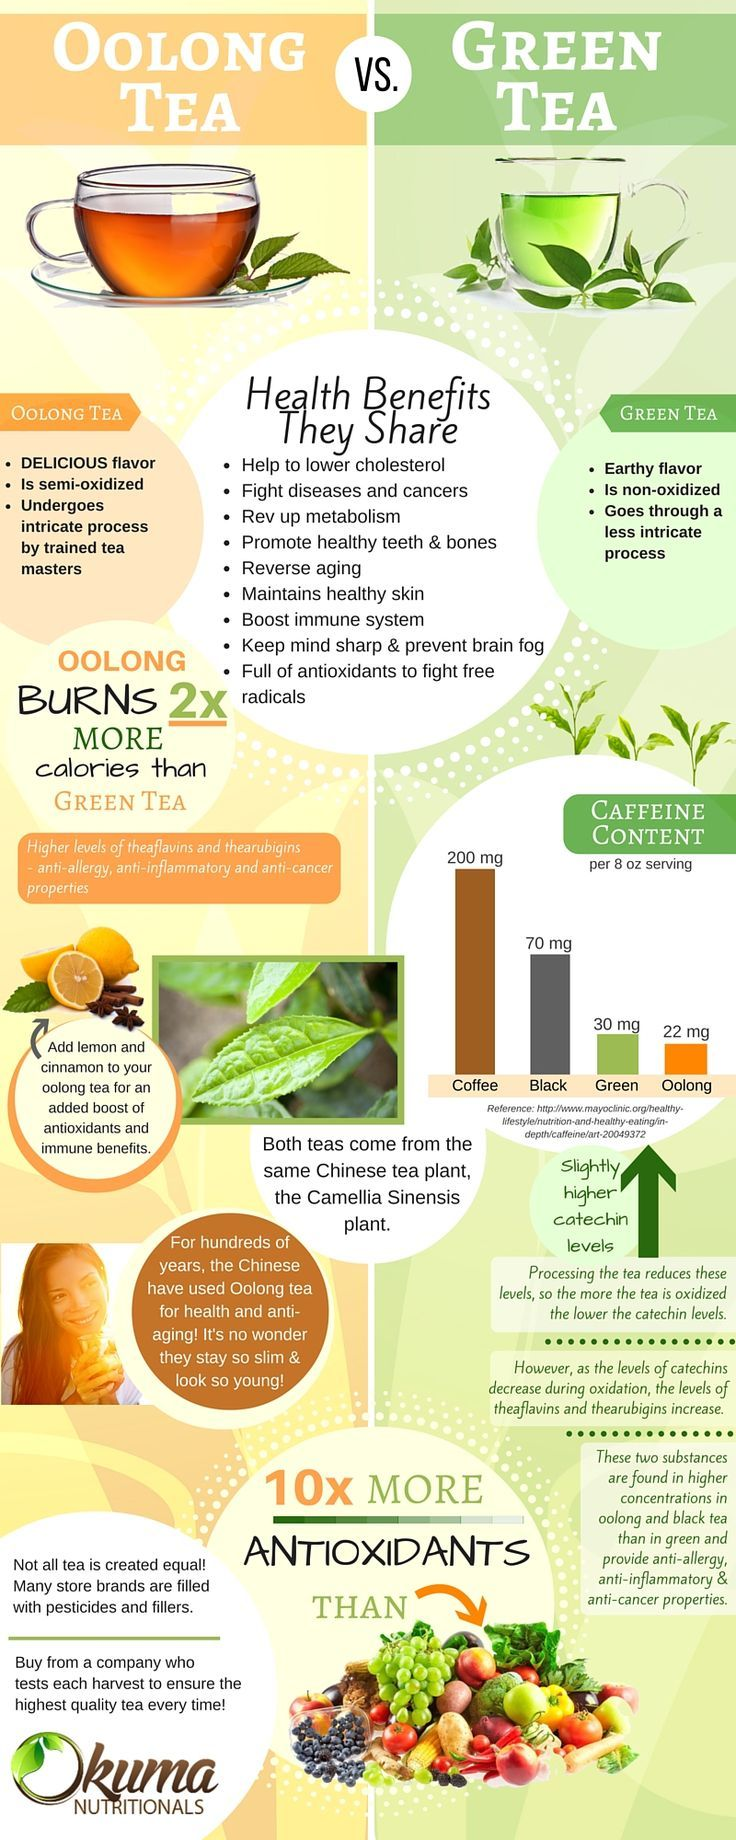 Oolong And Green Tea Are Very Similar But Oolong Tea Seems To Come Out On Top Read A Fruit Health Benefits Coconut Health Benefits Oolong Tea Health Benefits